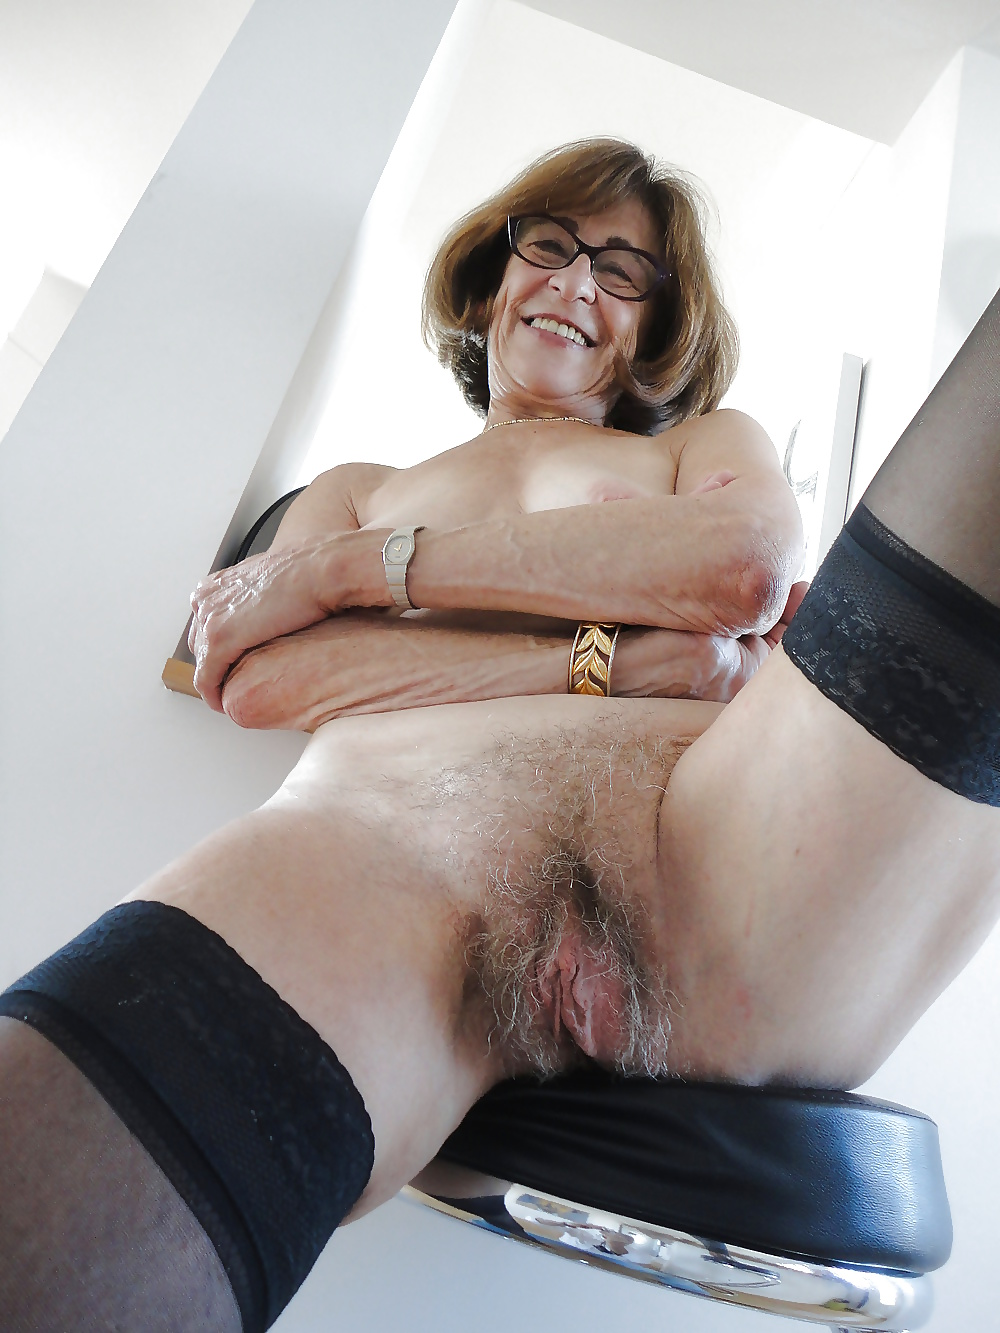 Hairy mature women pictures, beautiful nude women, free mature porn pics